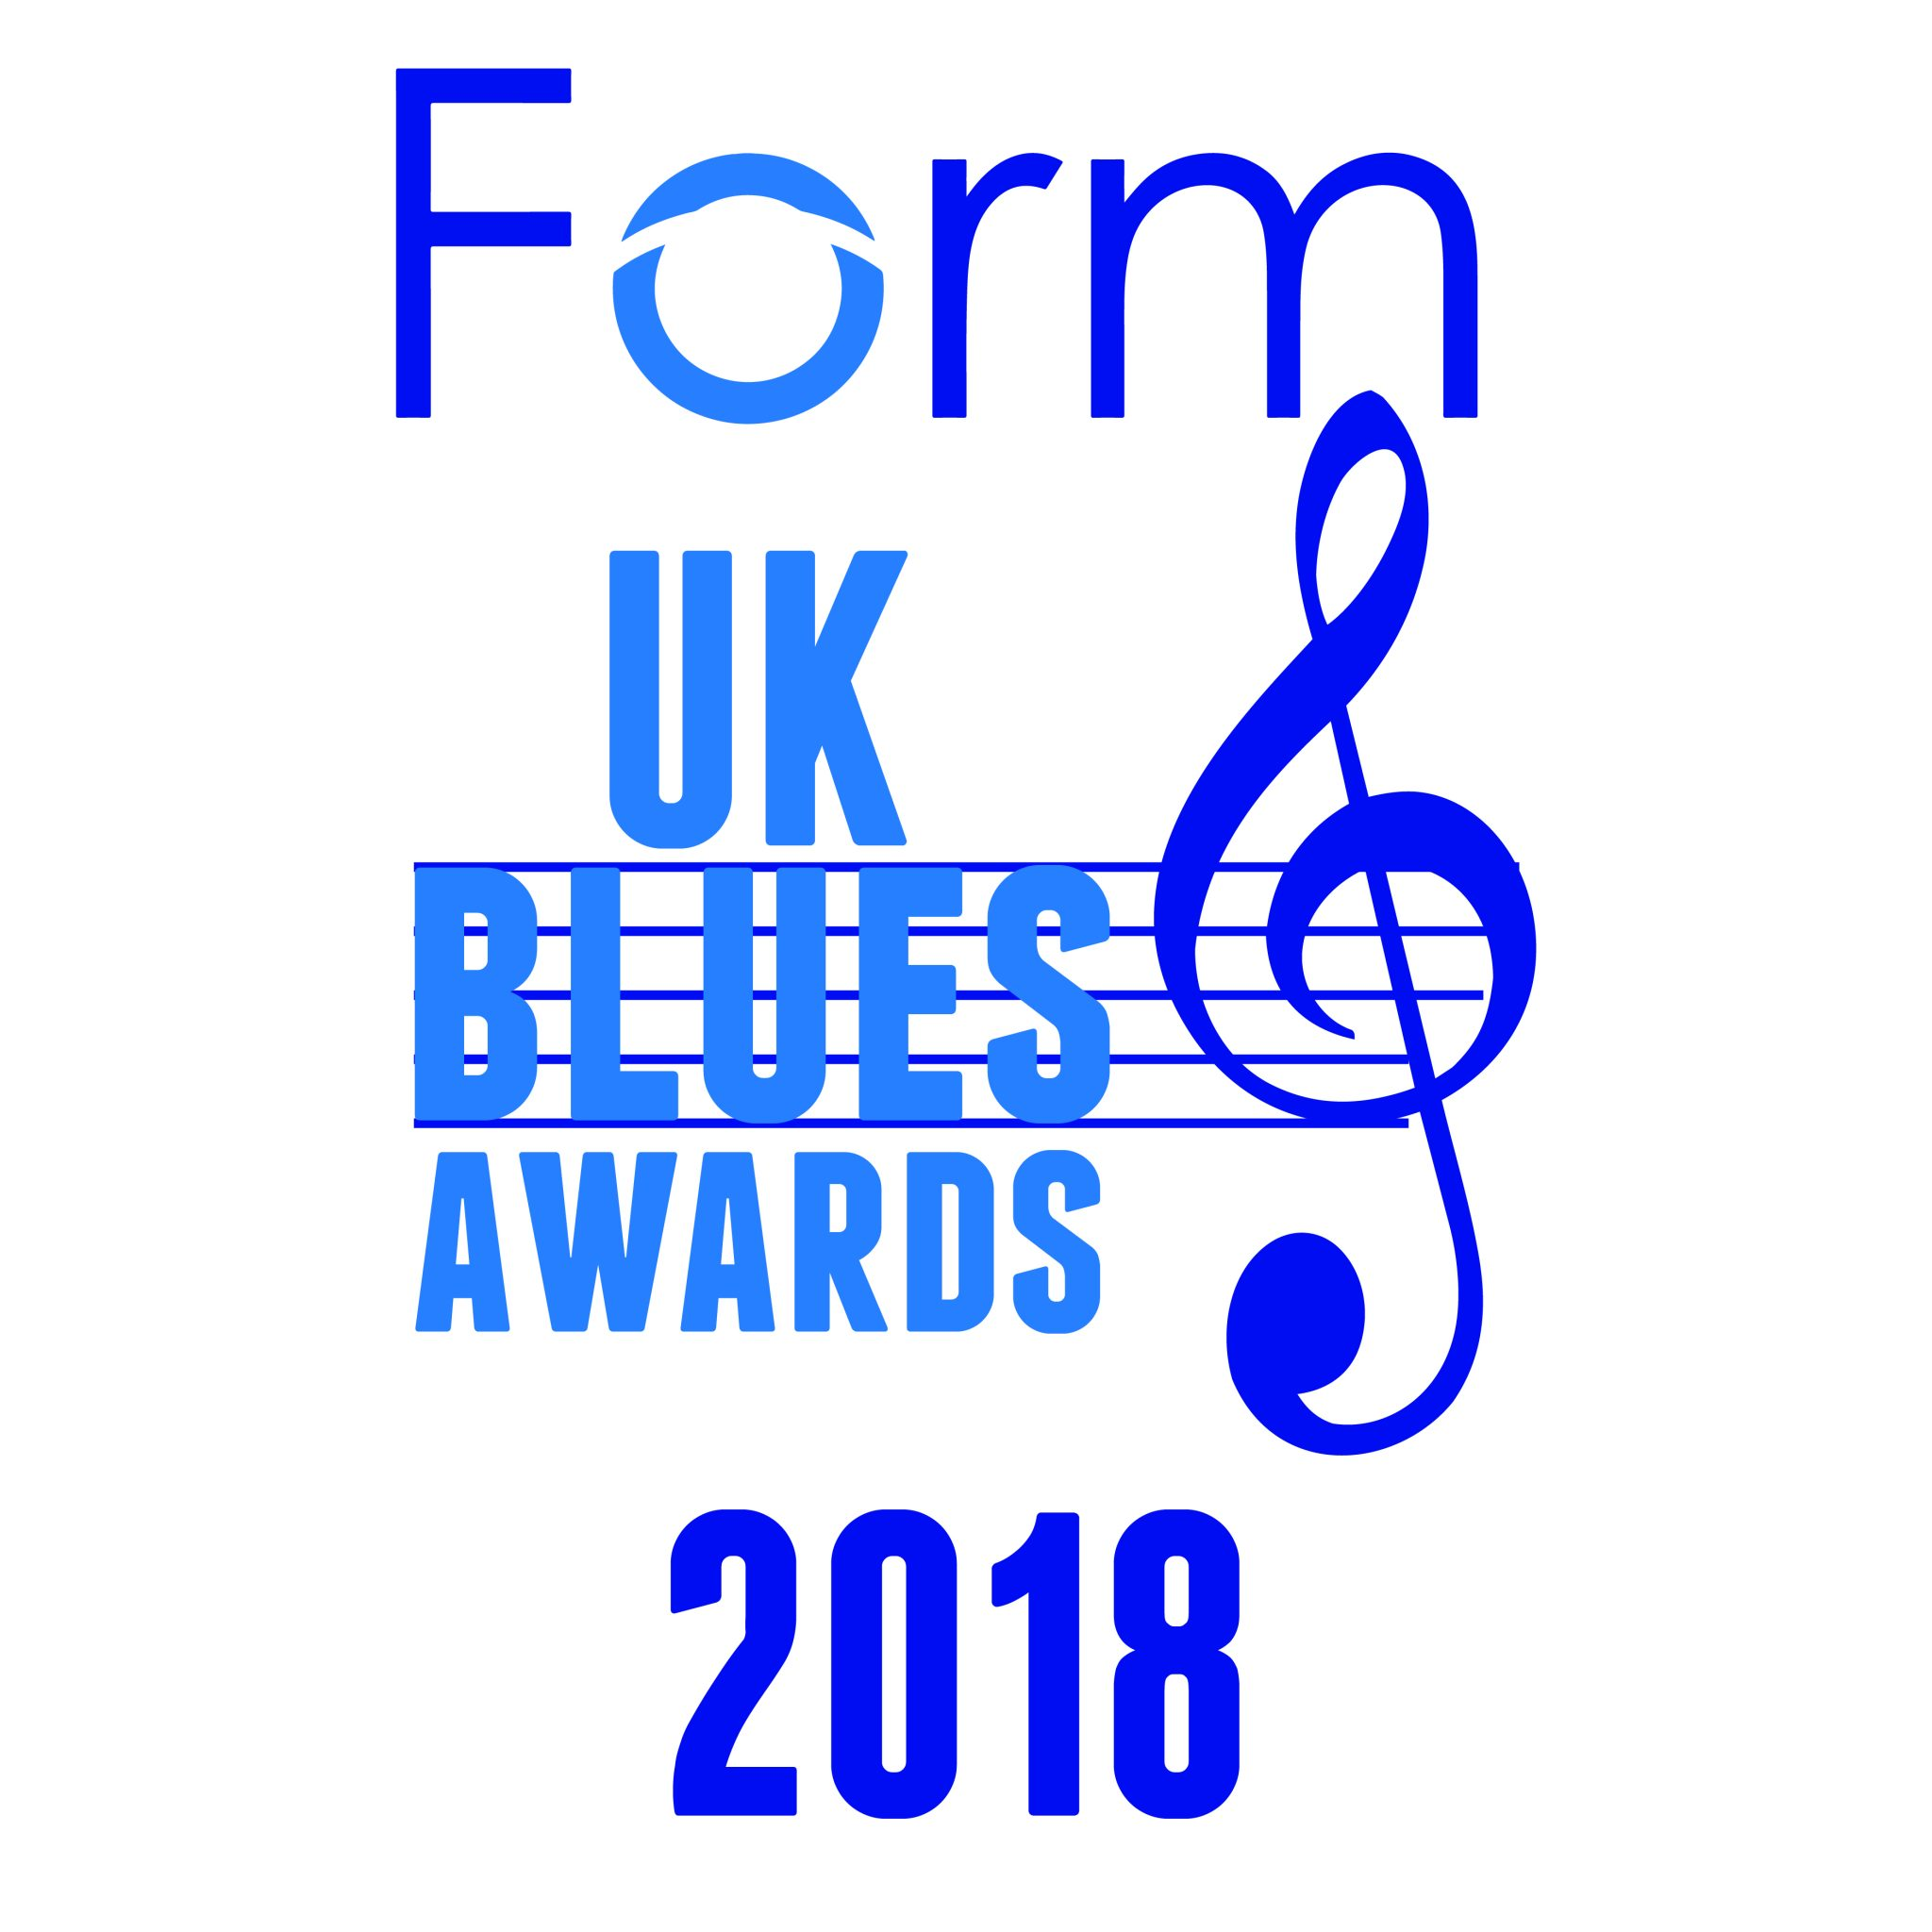 Share Valentines Love VOTE Today FORMUKBlues Awards